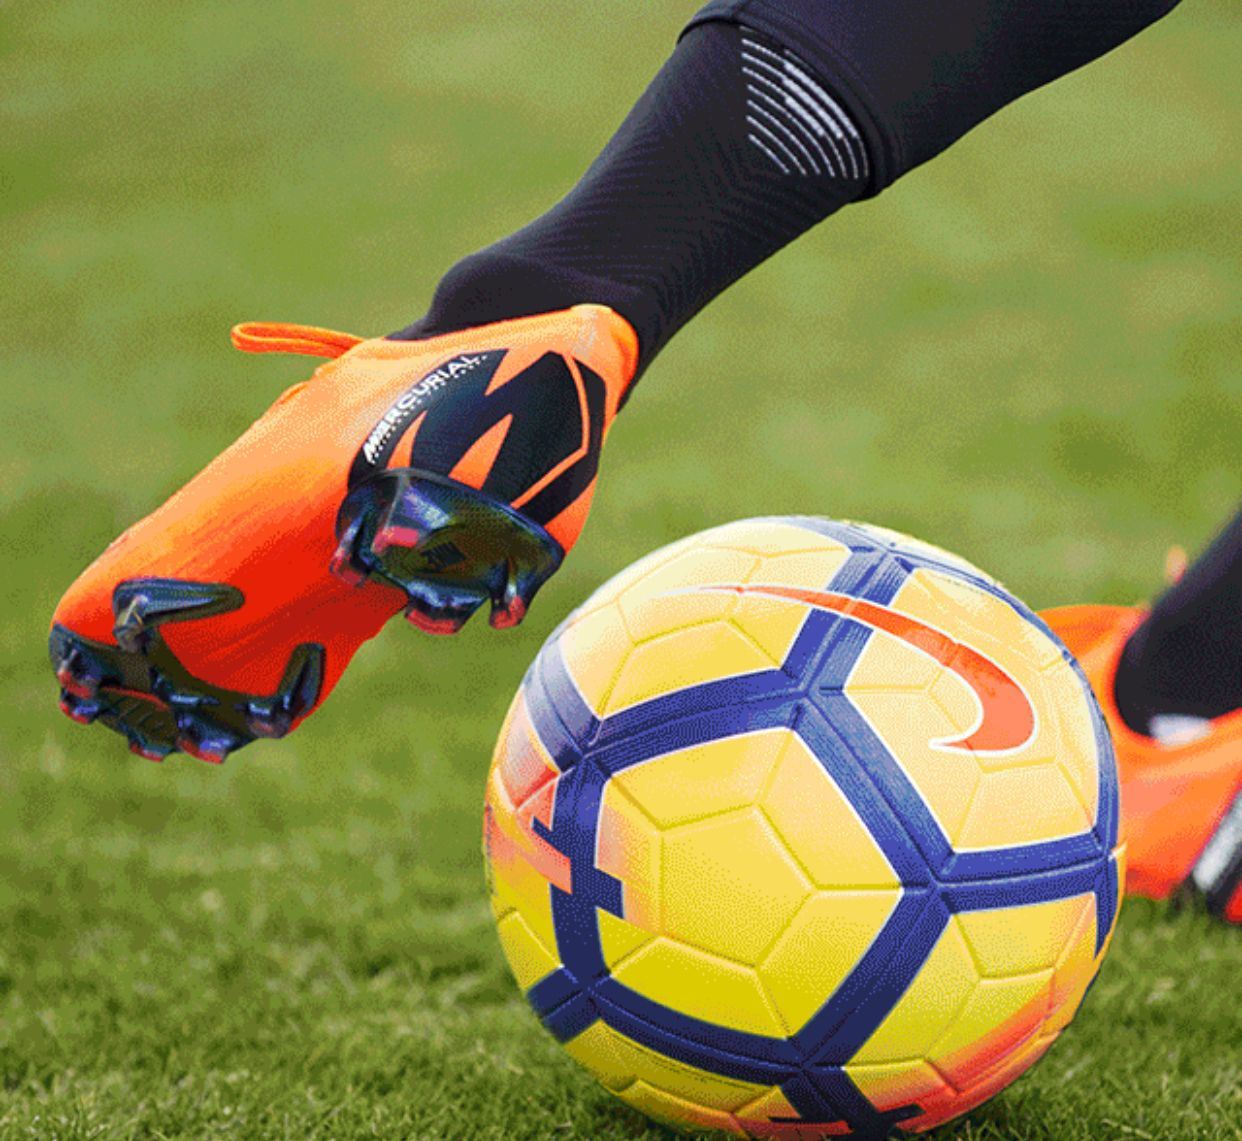 1fb9f4dd6024 Nike Soccer, Soccer Cleats, Soccer Ball, Soccer Boots, Football Boots,  Andrew